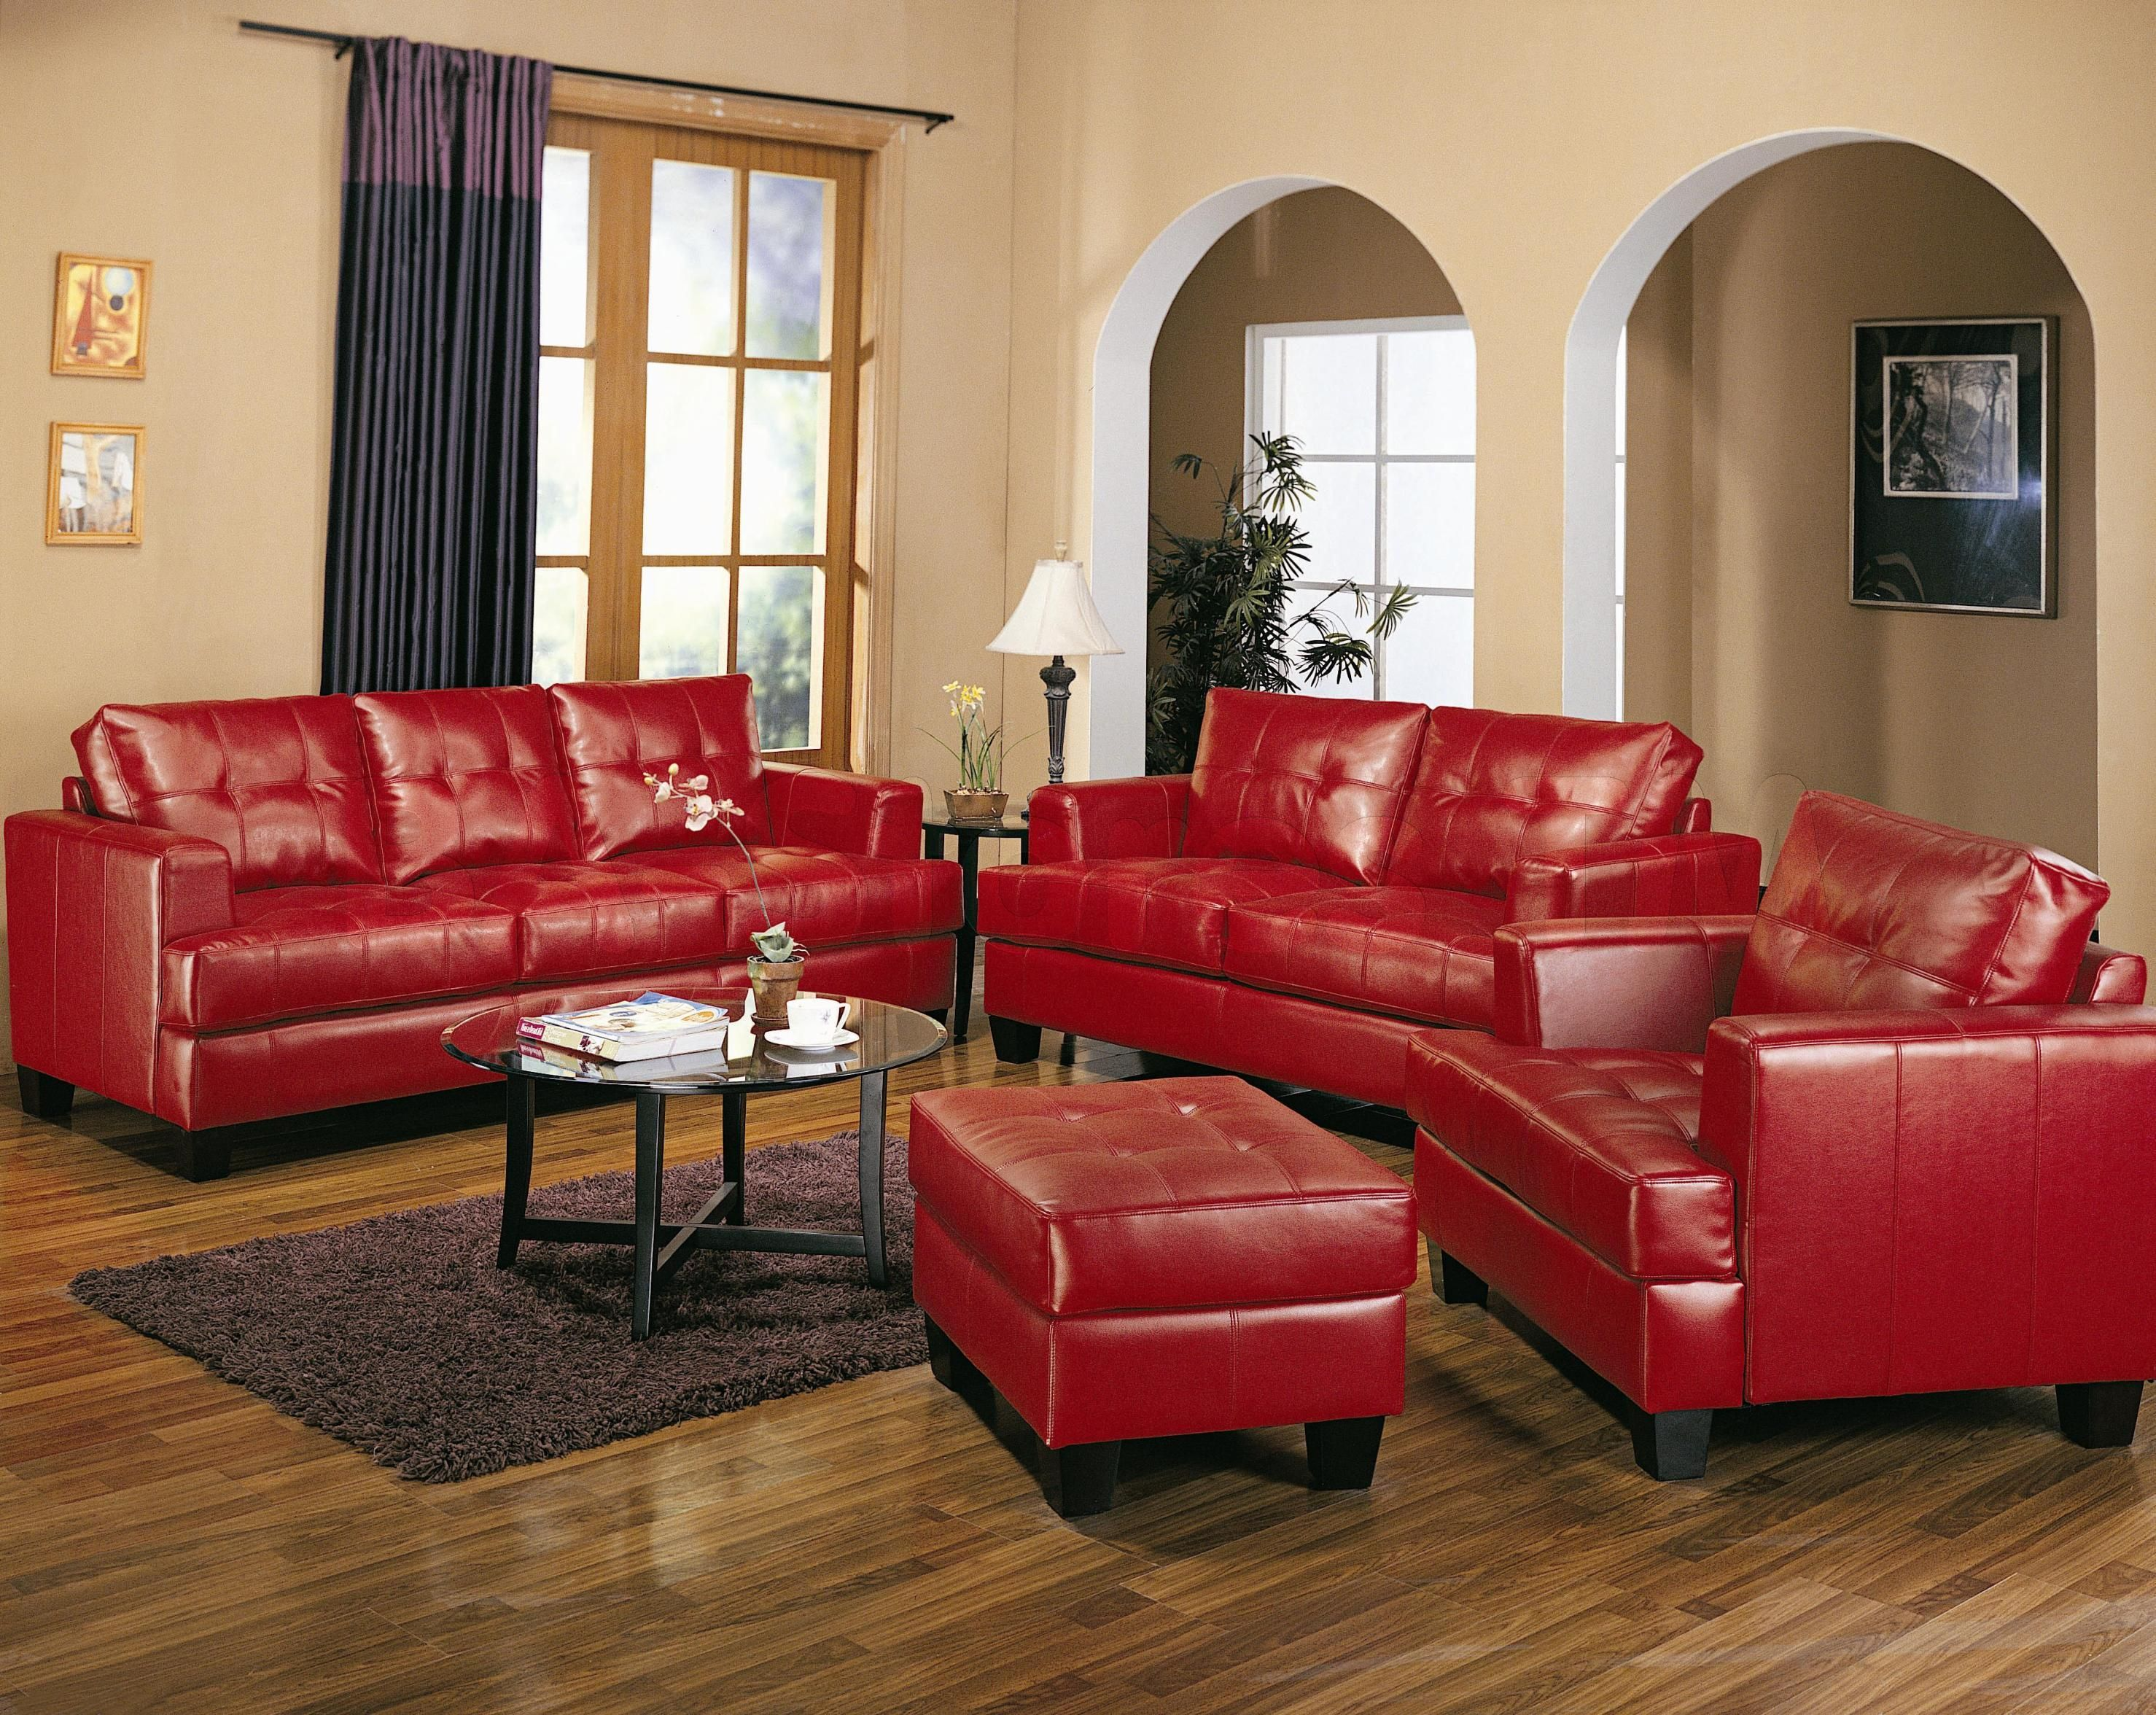 Living Rooms With Red Couches